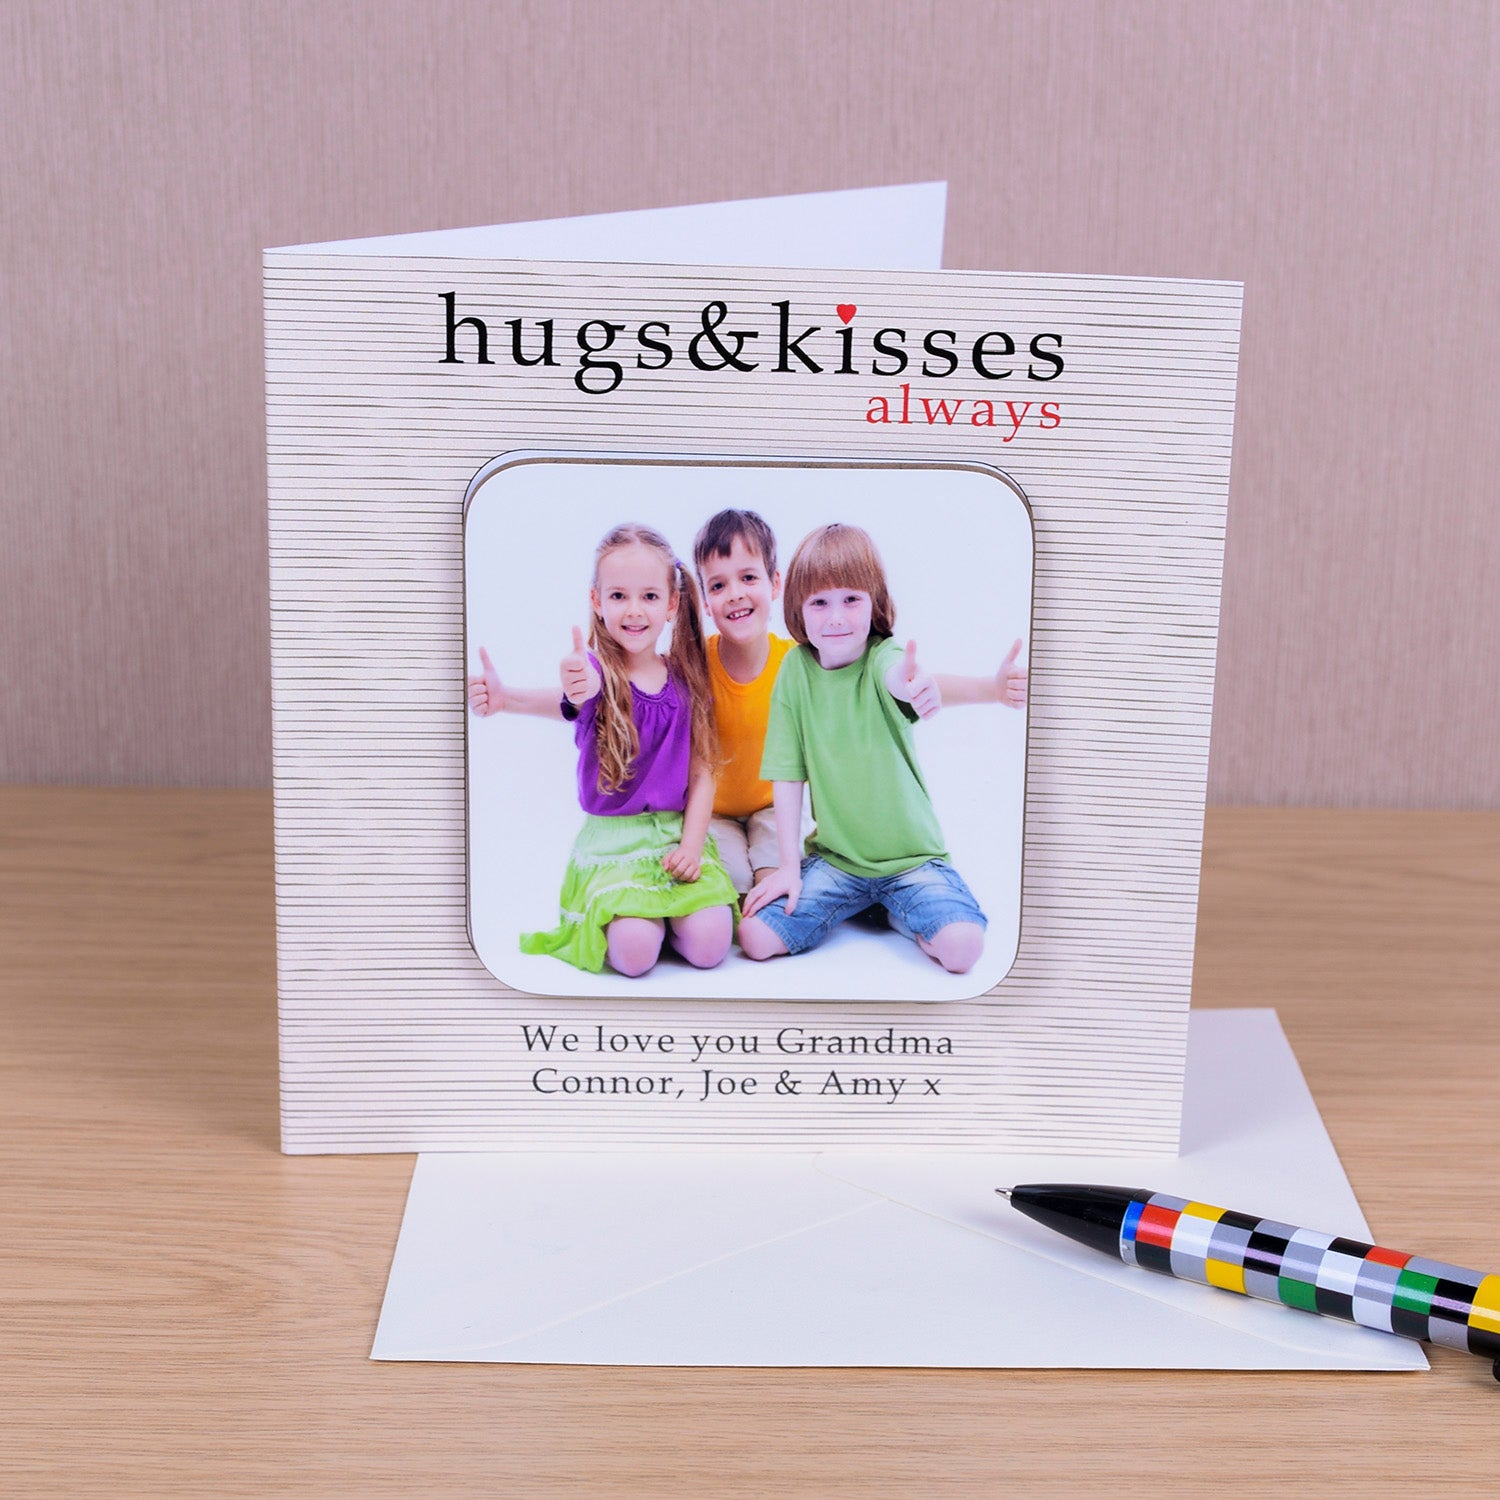 Hugs & Kisses always Coaster Card - Photo Upload, Barware by Gifts24-7